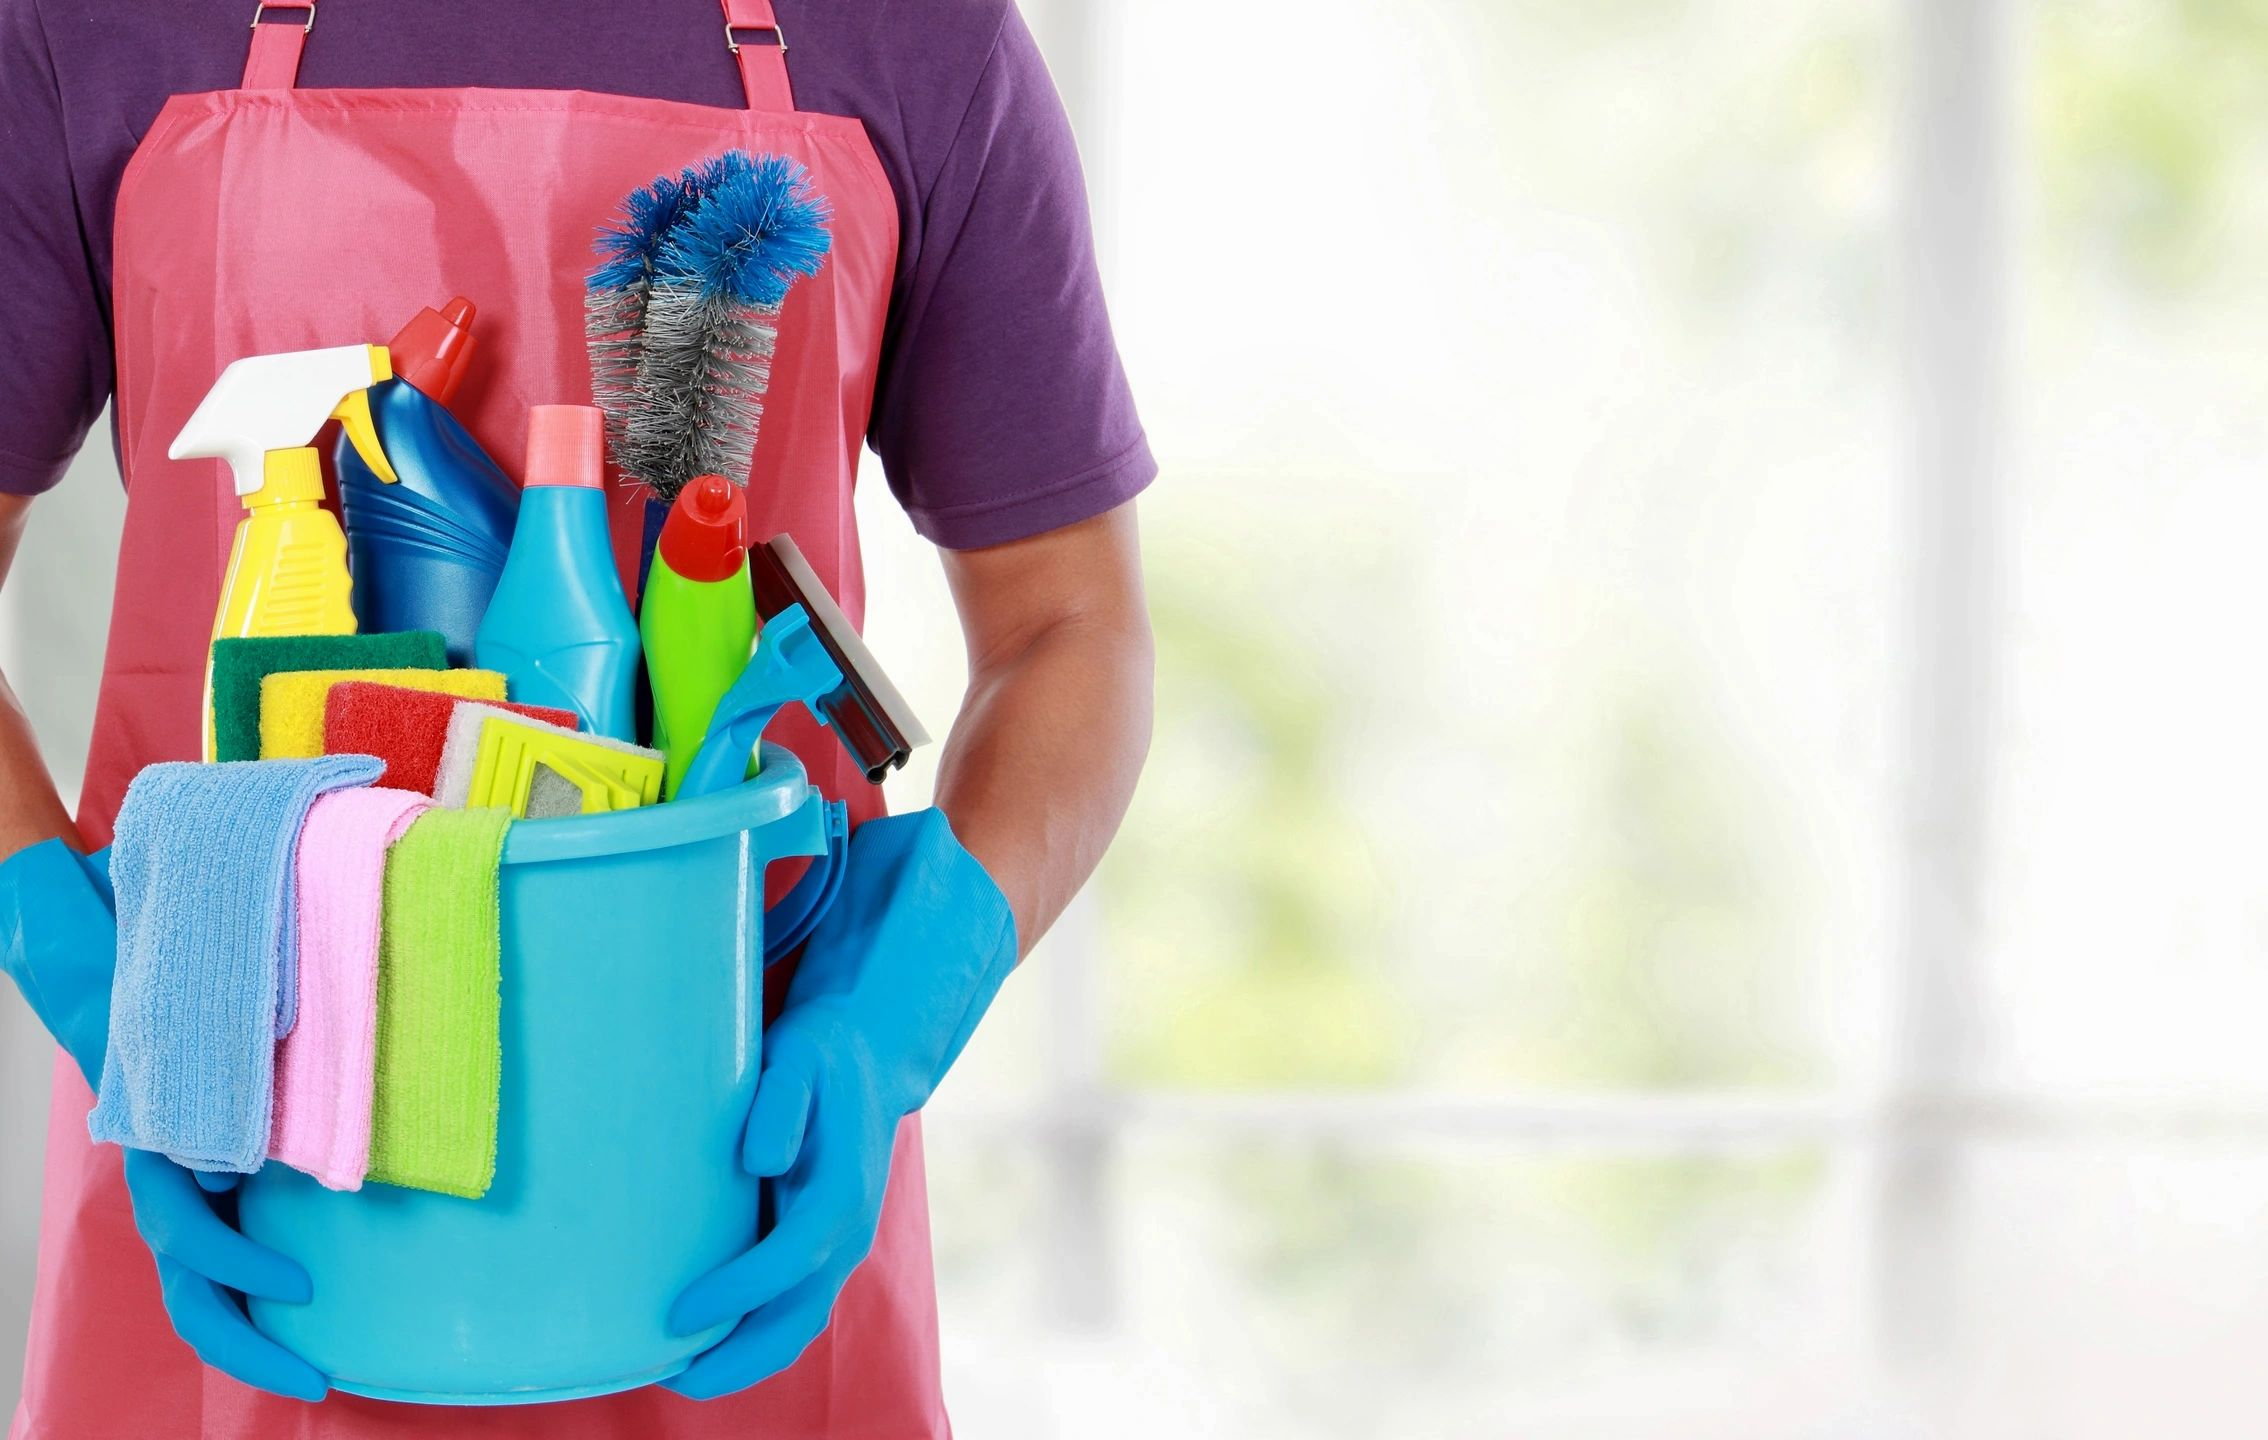 6 Steps You Should Take to Start a Successful Cleaning Business